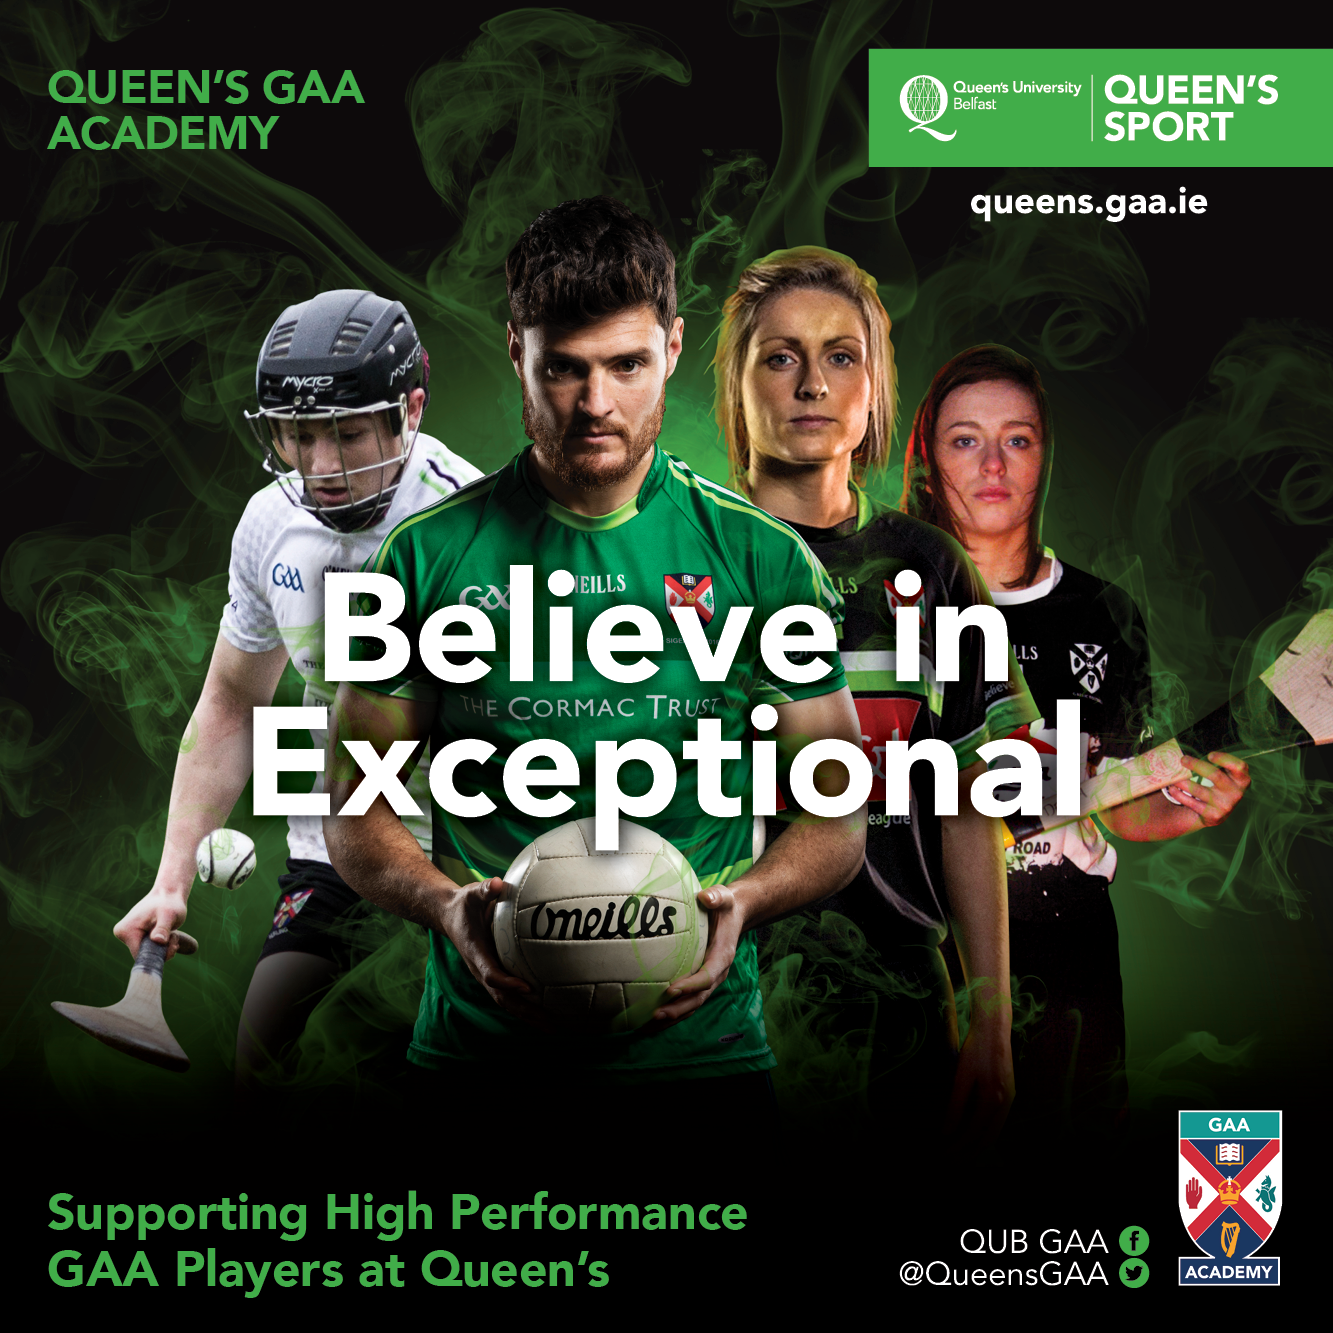 Applications for support through the GAA Academy at Queen's close this week